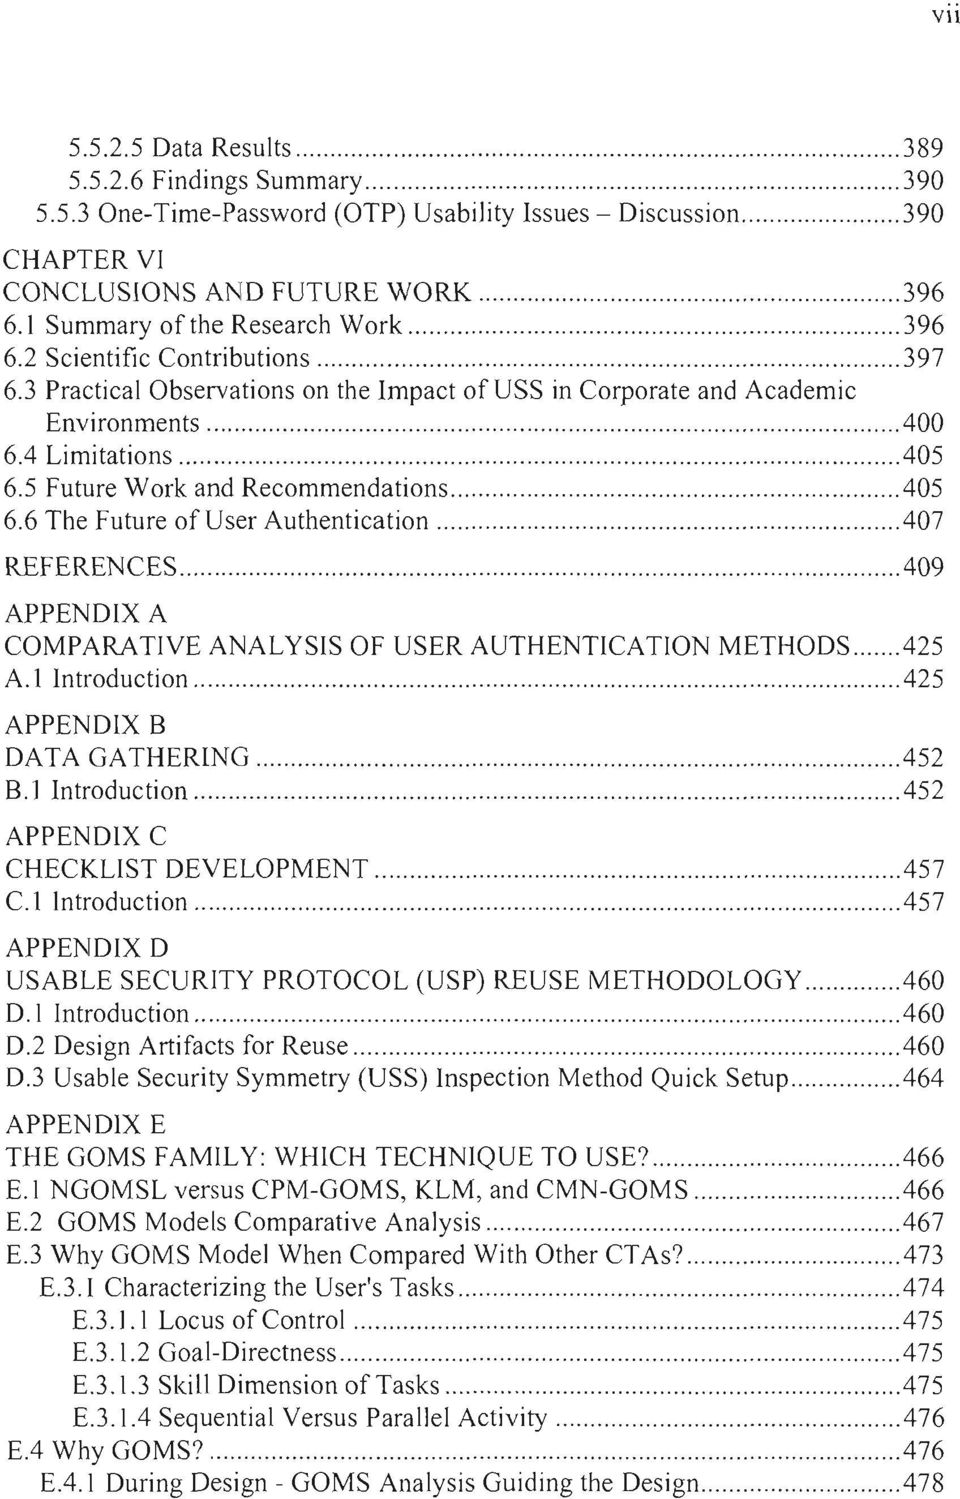 5 Future Work and Recommendations 405 6.6 The Future of User Authentication.407 REFERENCES APPENDIX A COMPARATIVE ANALYSIS OF USER AUTHENTICATION METHOOS.425 A.